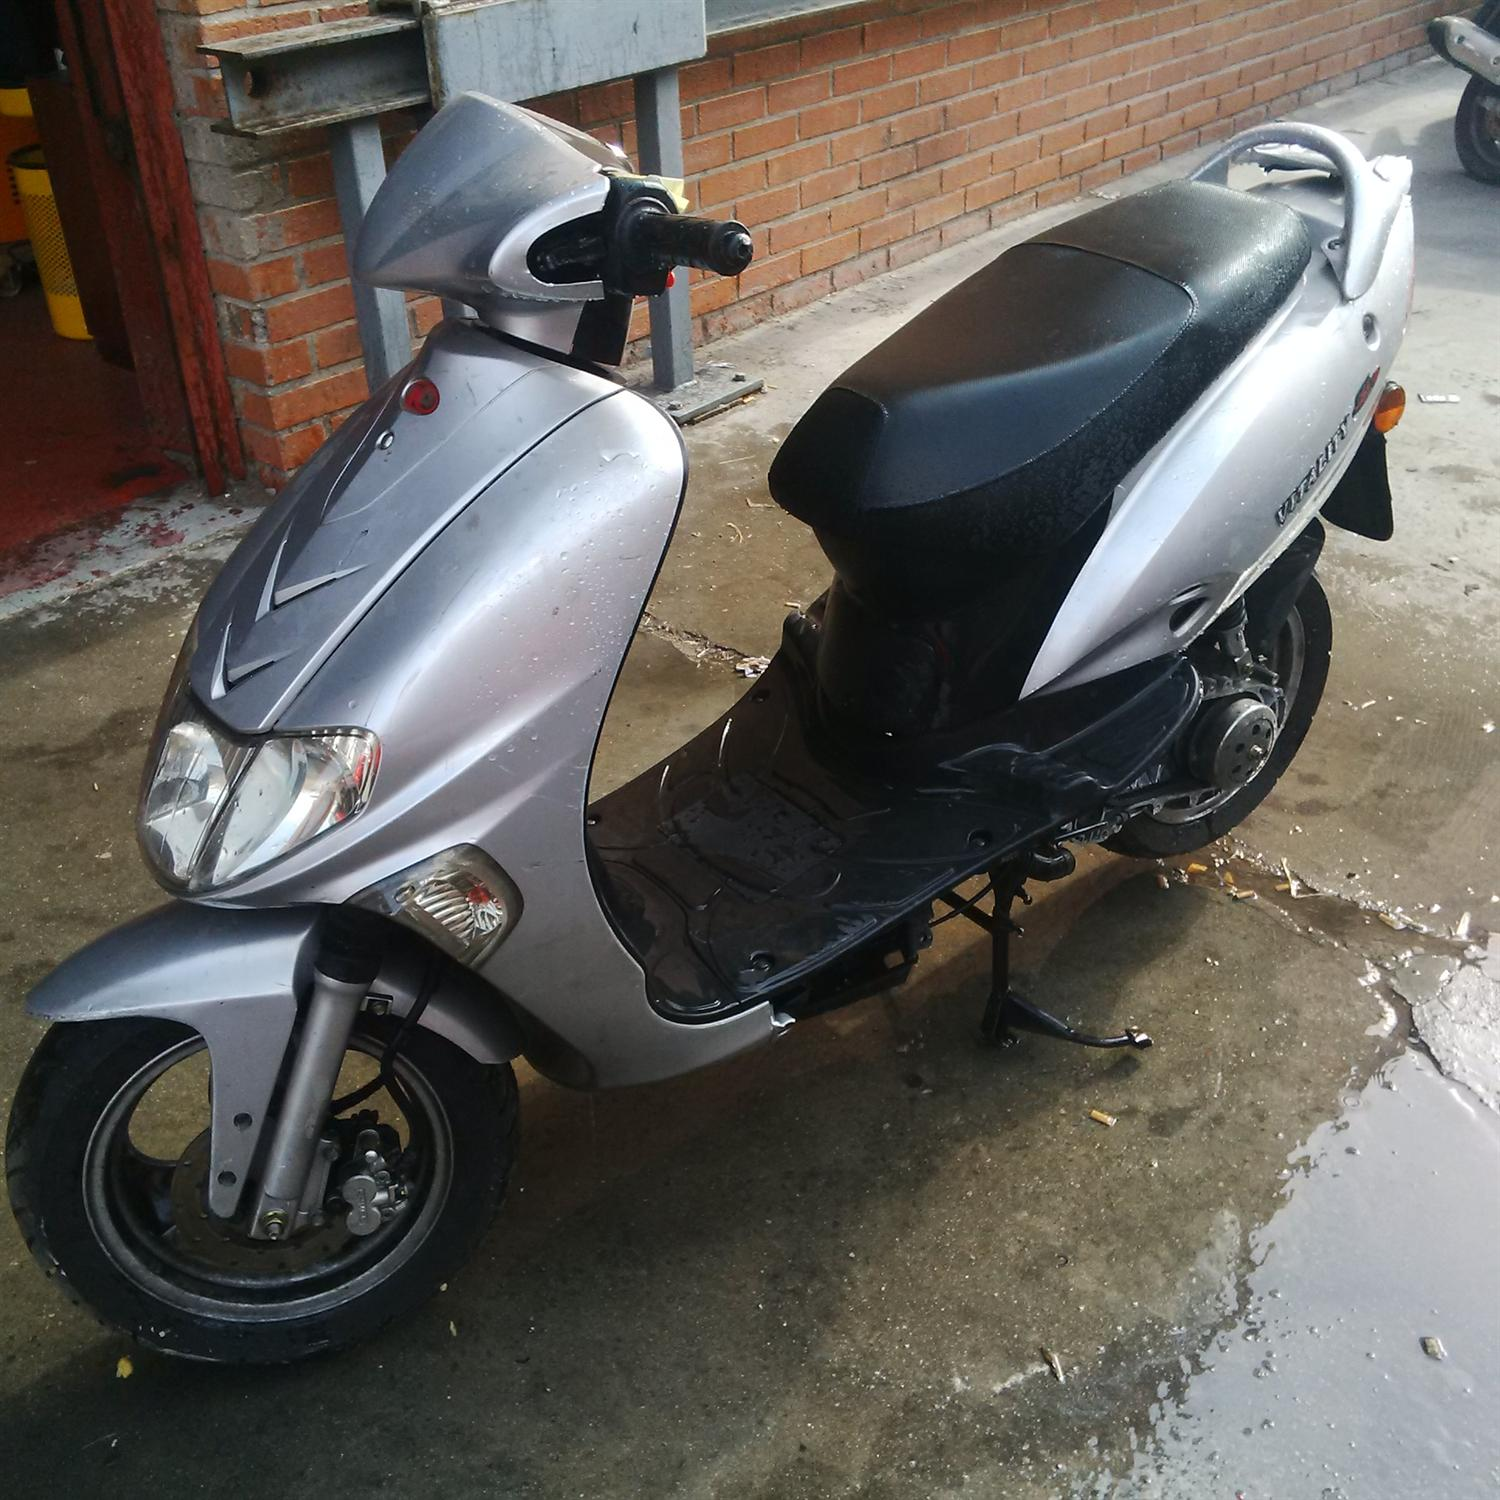 Kymco Agility 50 2006 images #101925